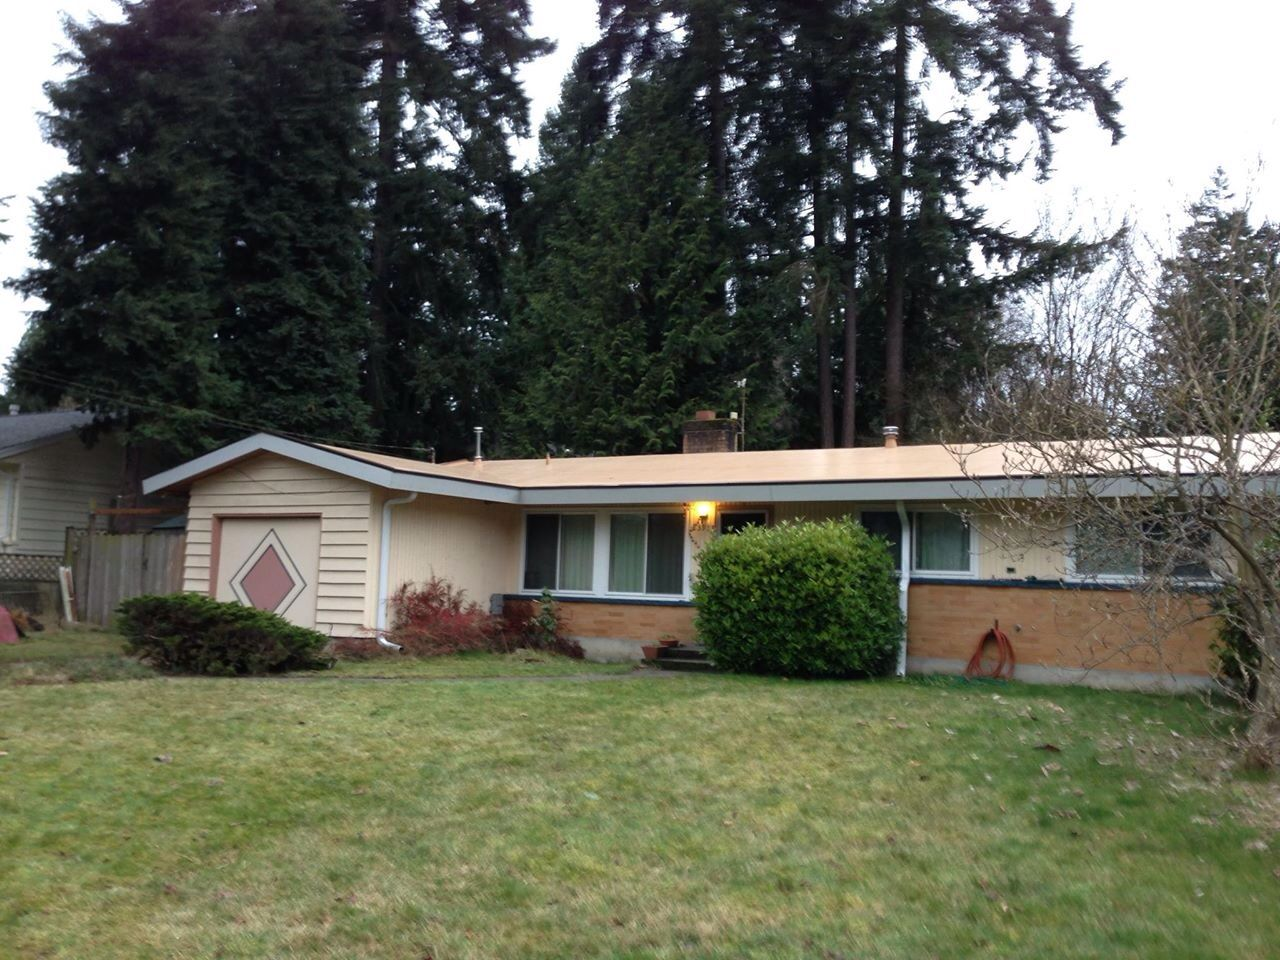 80 Mil Project In Edmonds Wa Shown In The Tan Membrane Membrane Roof Roofing Systems Roofing